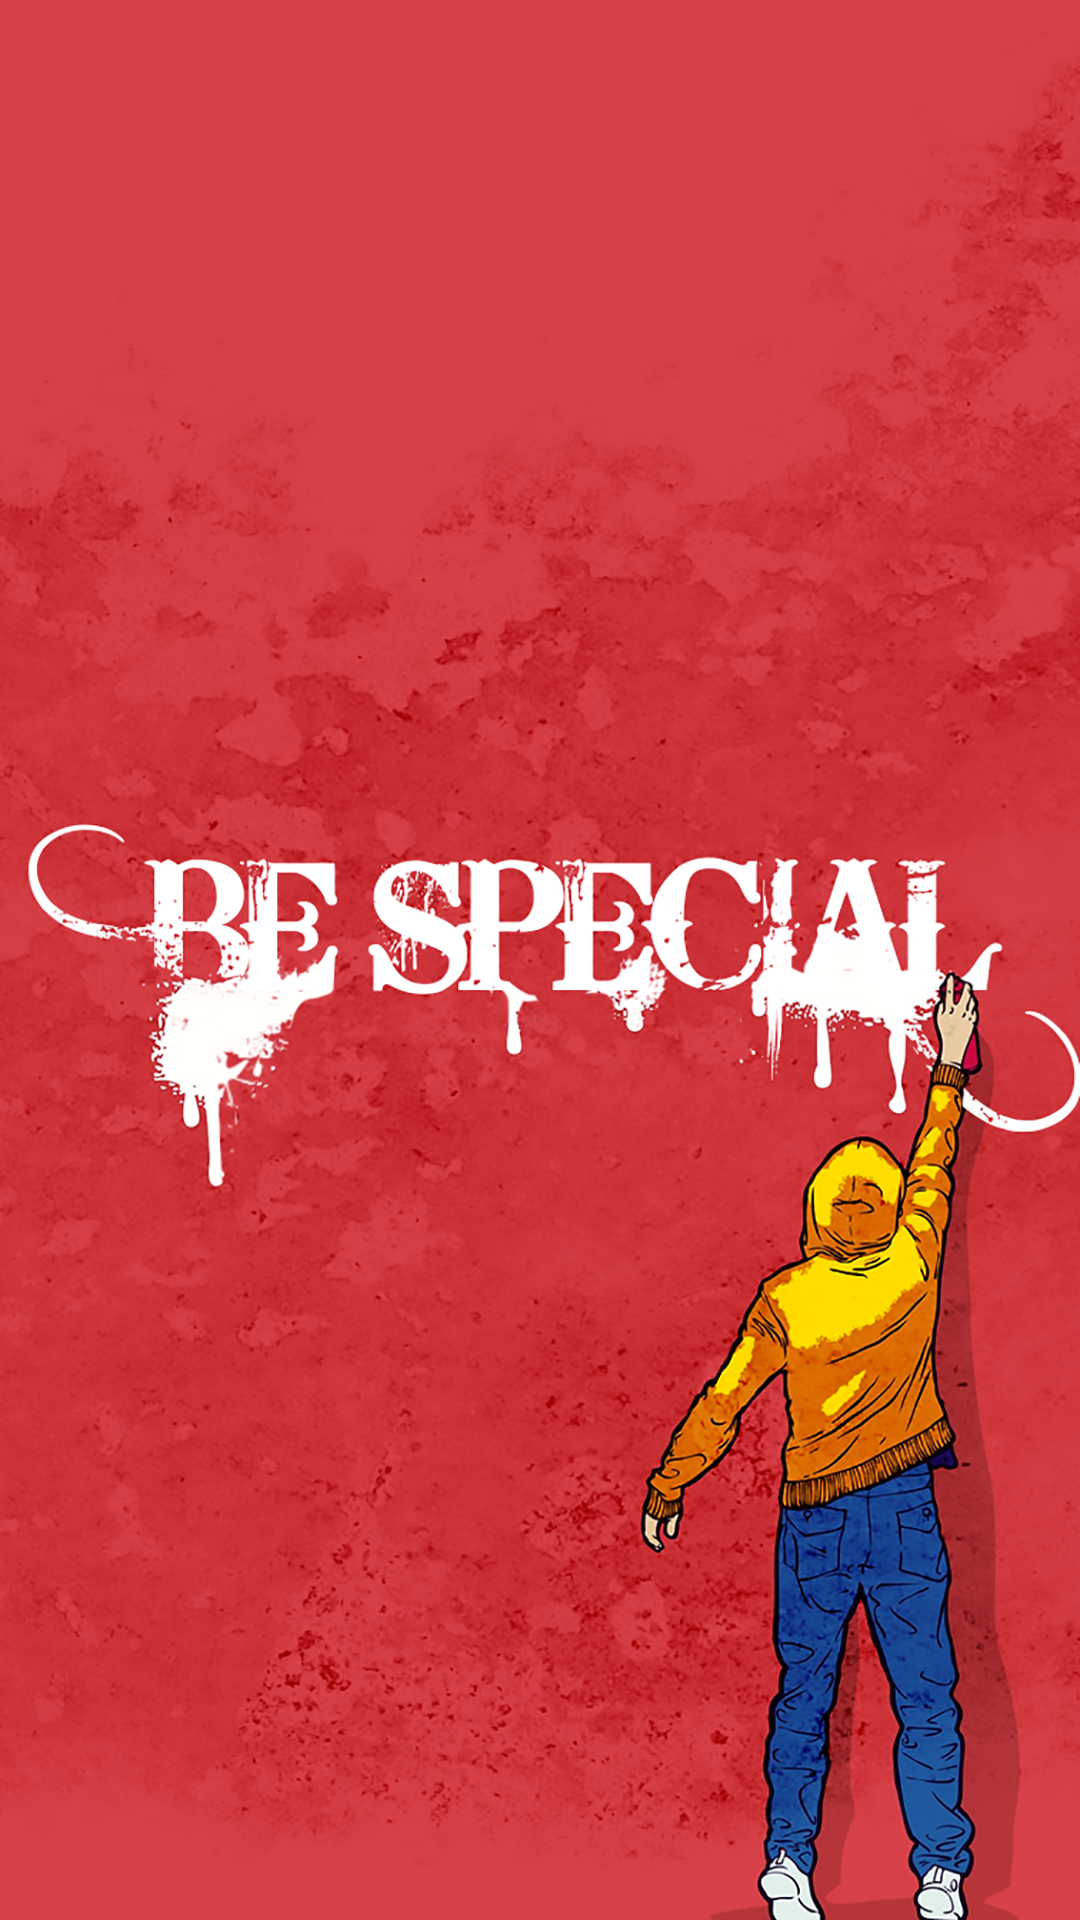 Graffiti creator iphone app -  Tap And Get The Free App Art Creative Graffiti Walls Quotes Red Pink